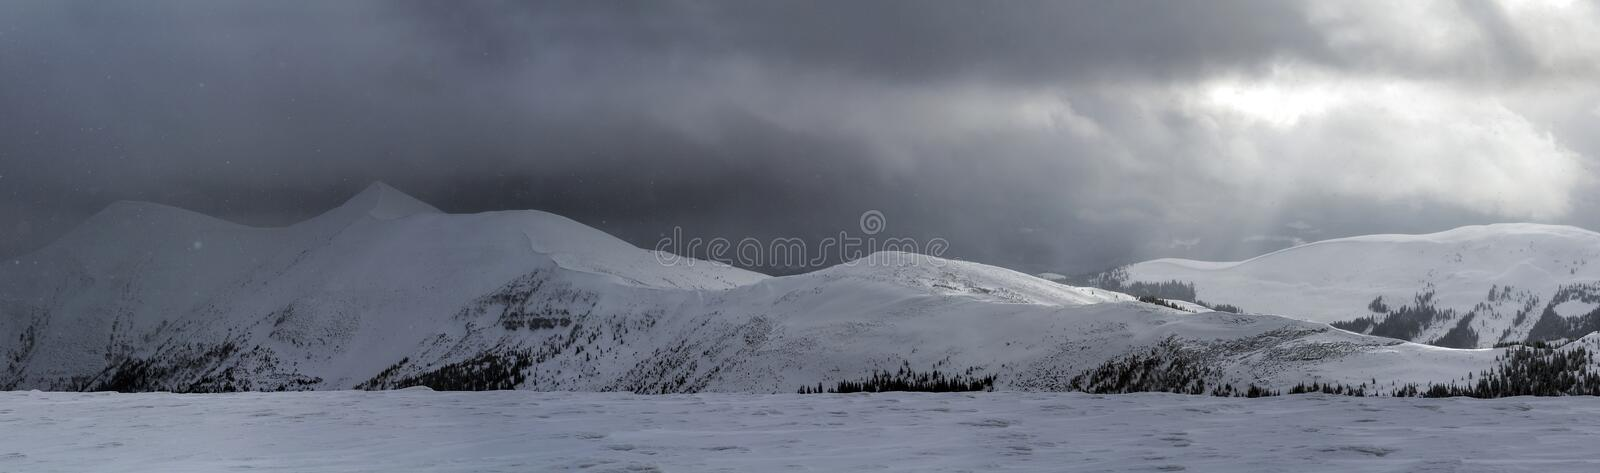 Winter mountain view in Carpathian mountains with dramatic clouds royalty free stock photos